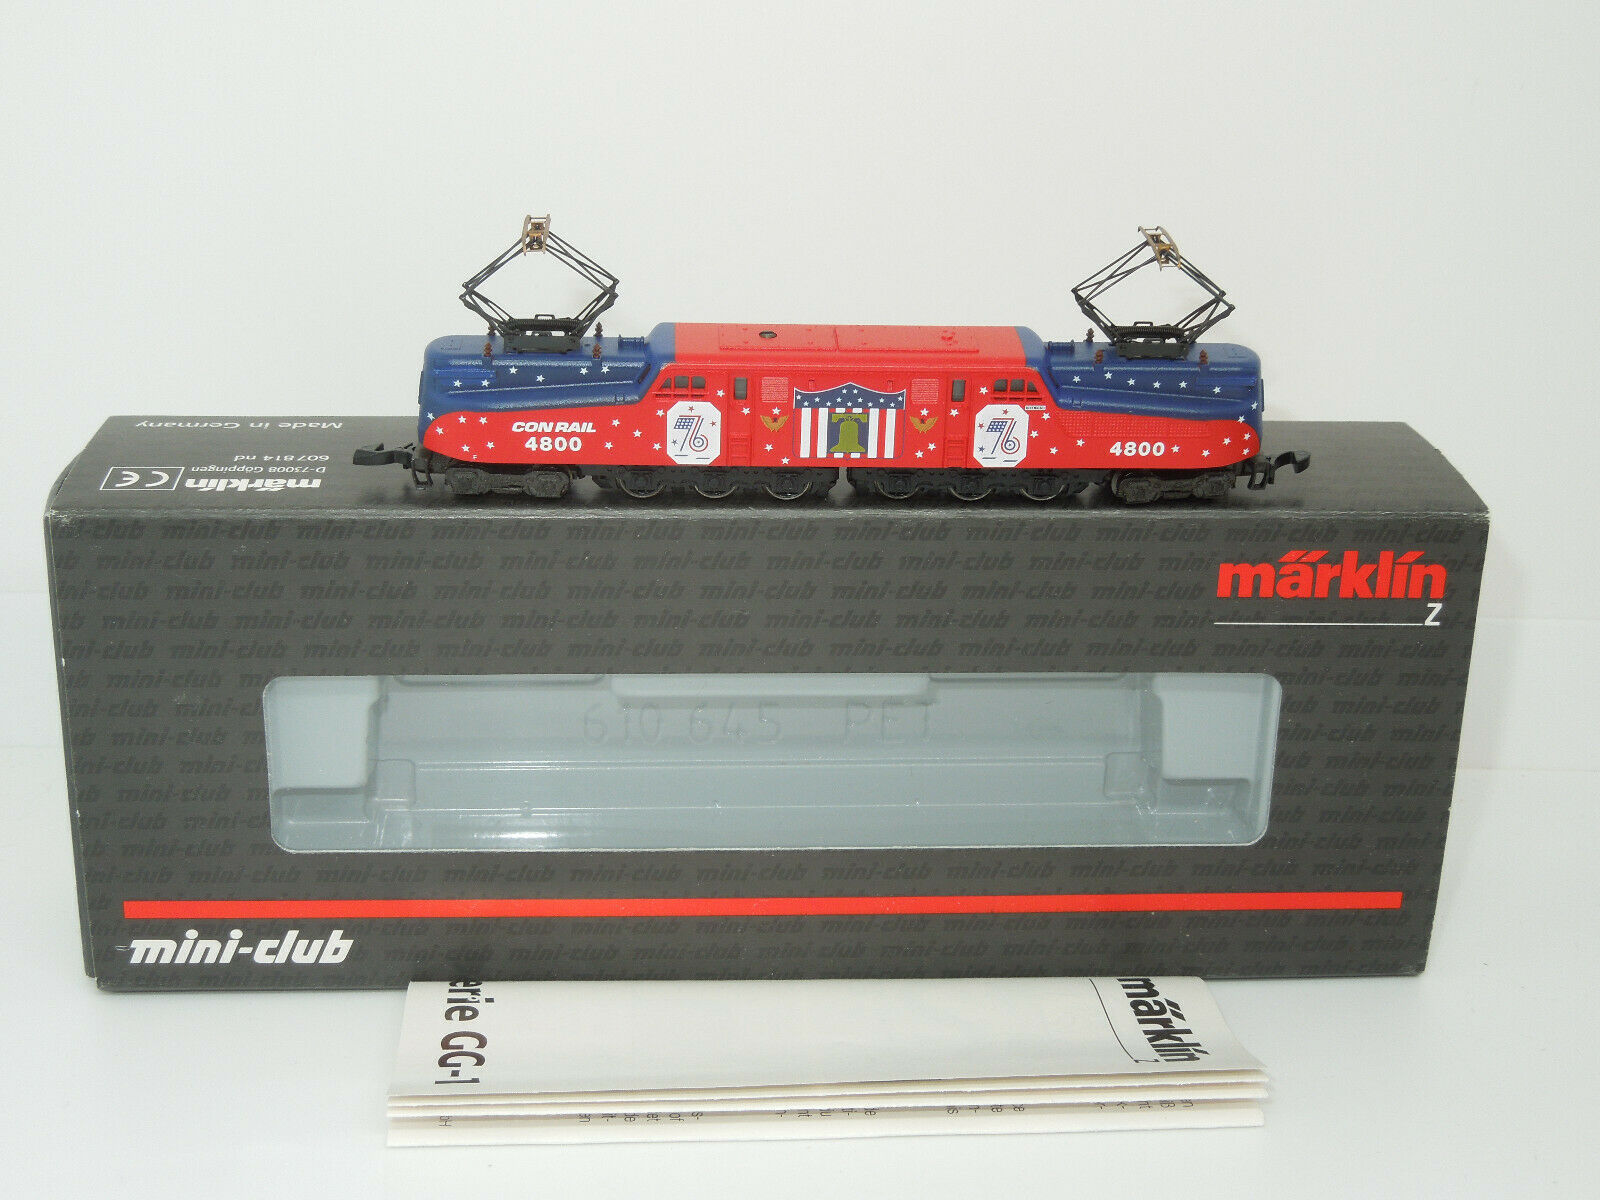 Märklin mini-club 88491 US E-Lok Reihe GG-1 der Consolidated Rail Co. (Conrail)